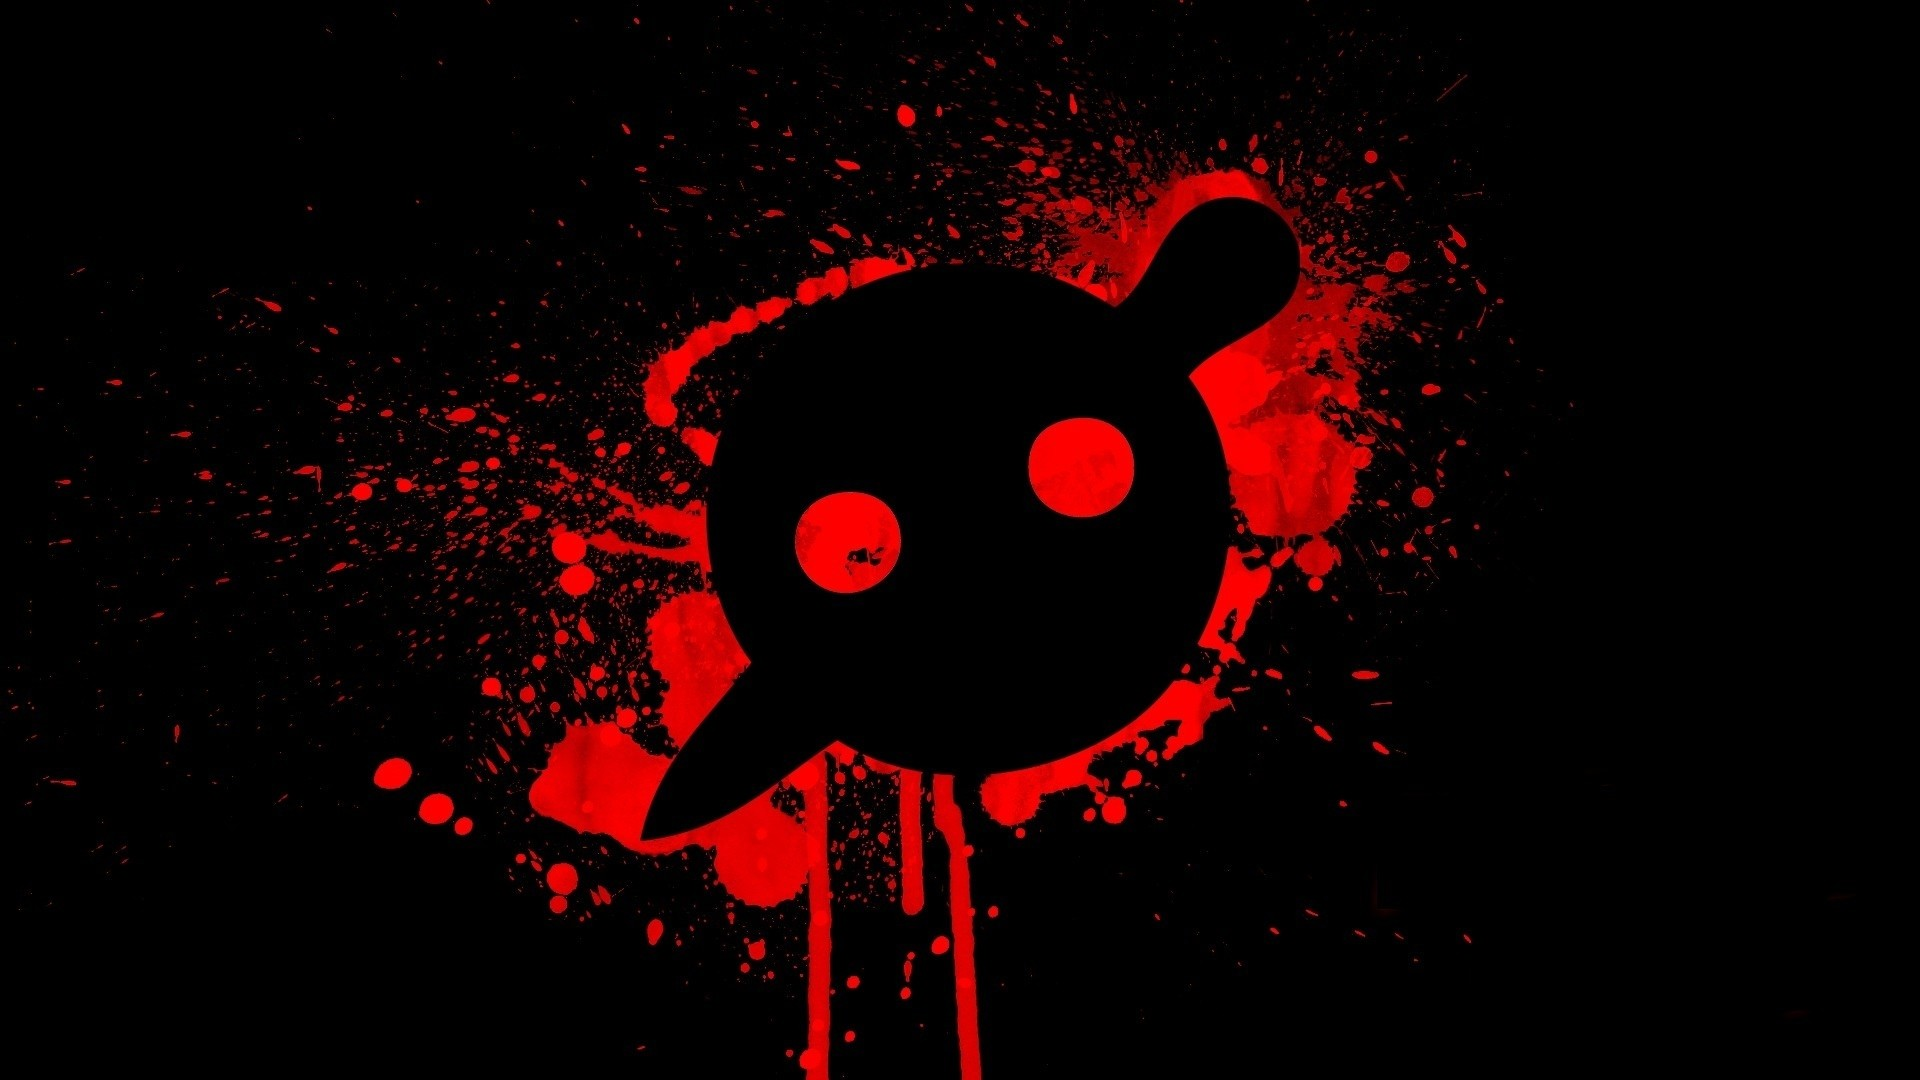 black music red simple knife party electronic music wallpaper  Wallpaper HD